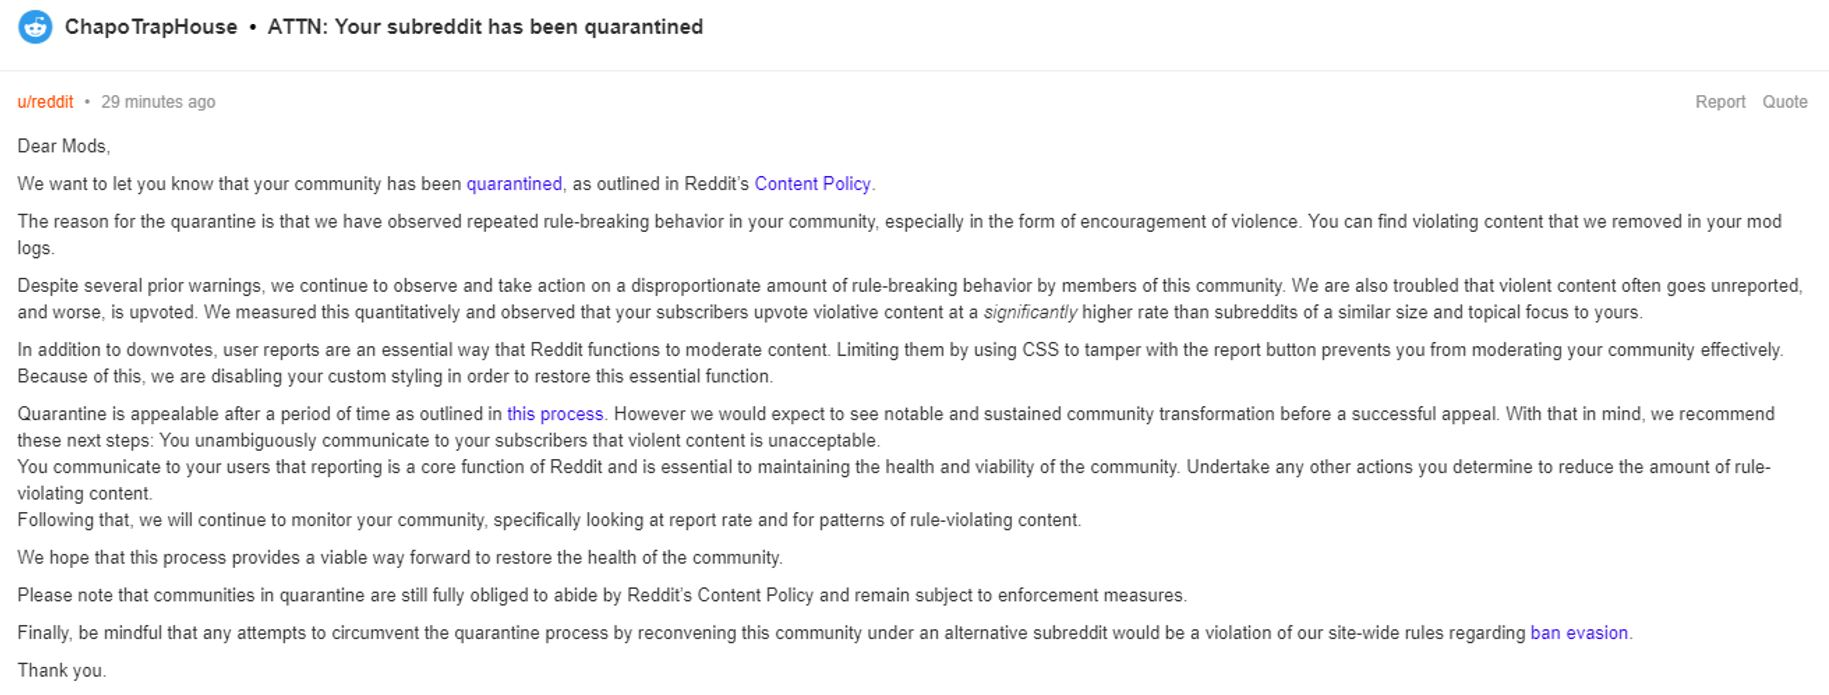 "Chapo Trap House's Reddit Community ""Quarantined"" After CRC Film"